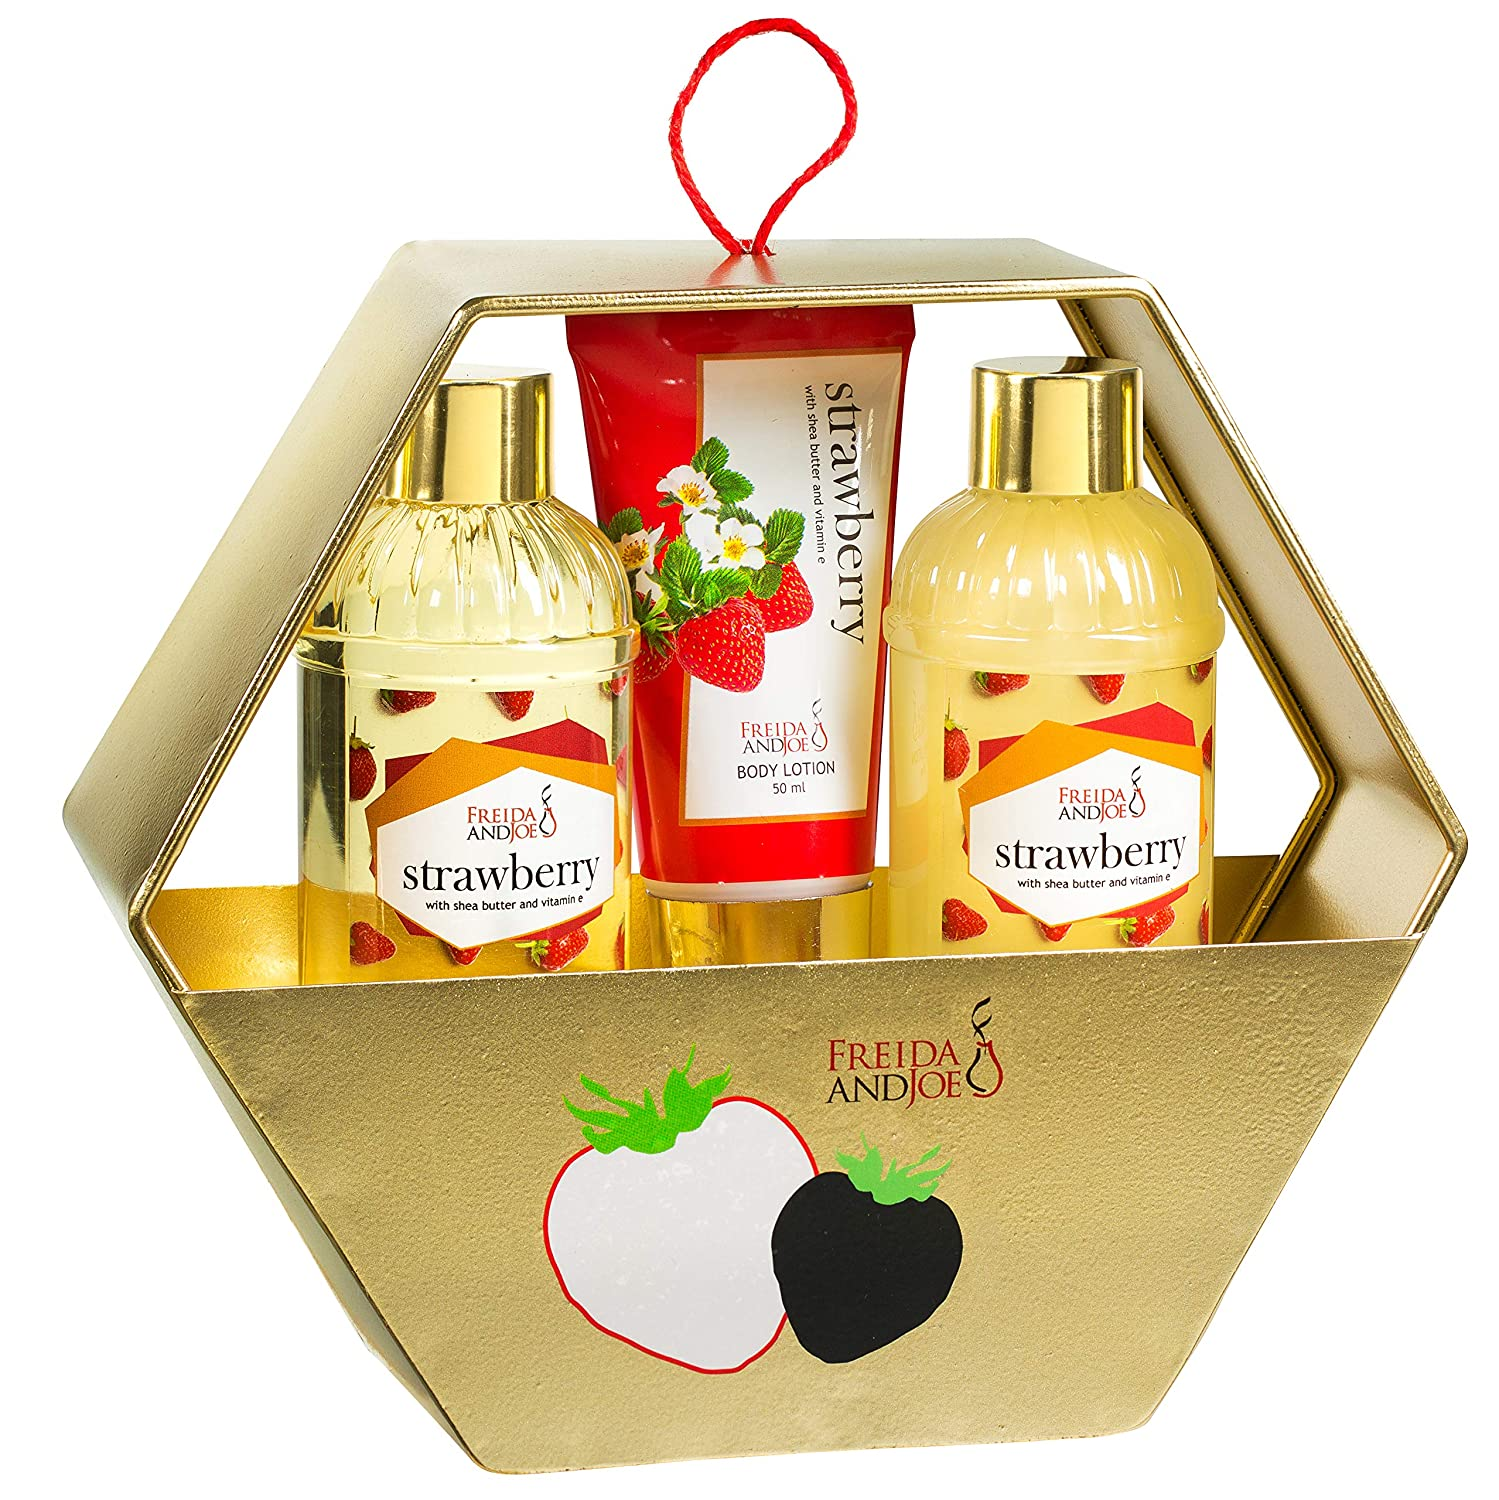 Bath and Body Basket Set For Women: Relaxing At Home Spa Kit Strawberry Holiday Kit in Gold Metal Hexagon Box Includes Shower Gel, Bubble Bath, Body Lotion